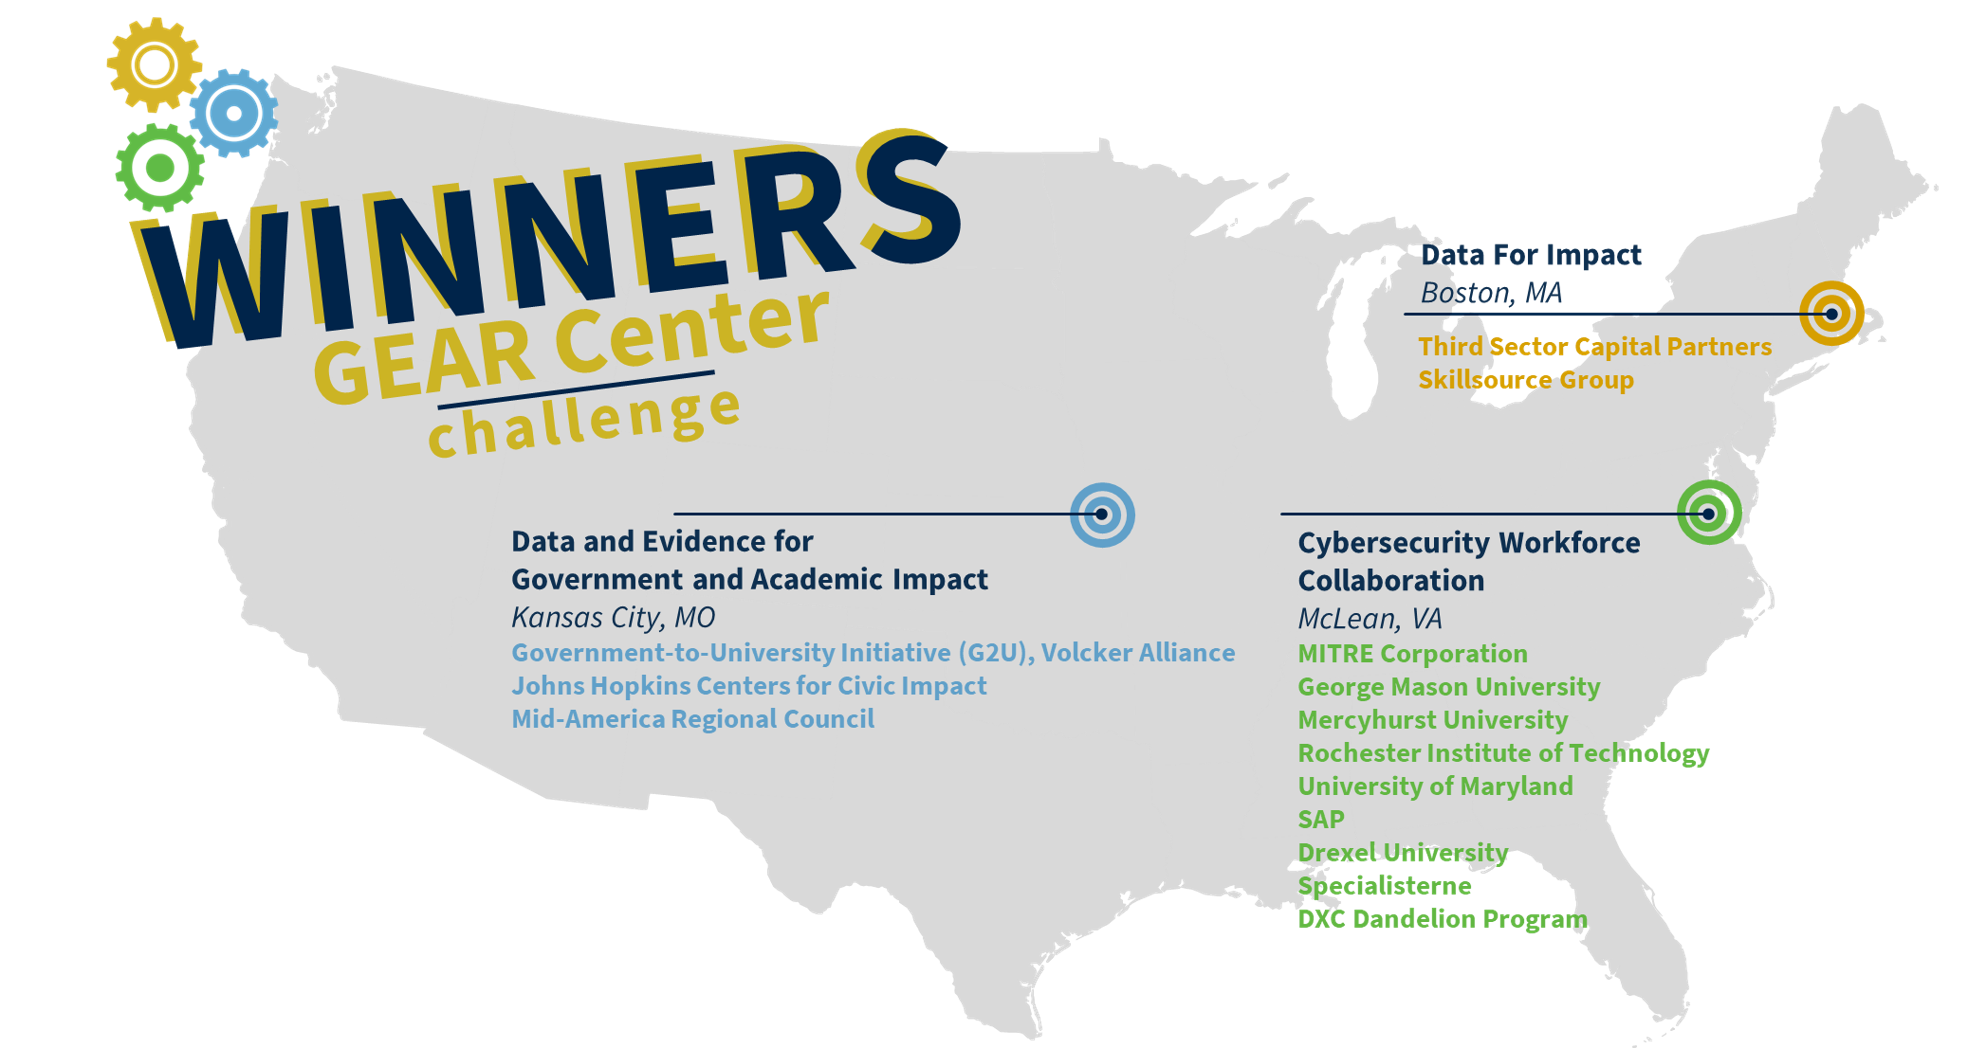 Map of Gear Challenge Winners: Data and Evidence for Government and Academic Impact, Kansas City, MO; Cybersecurity Workforce Collaboration, McLean, VA; and Data for Impact, Boston, MA